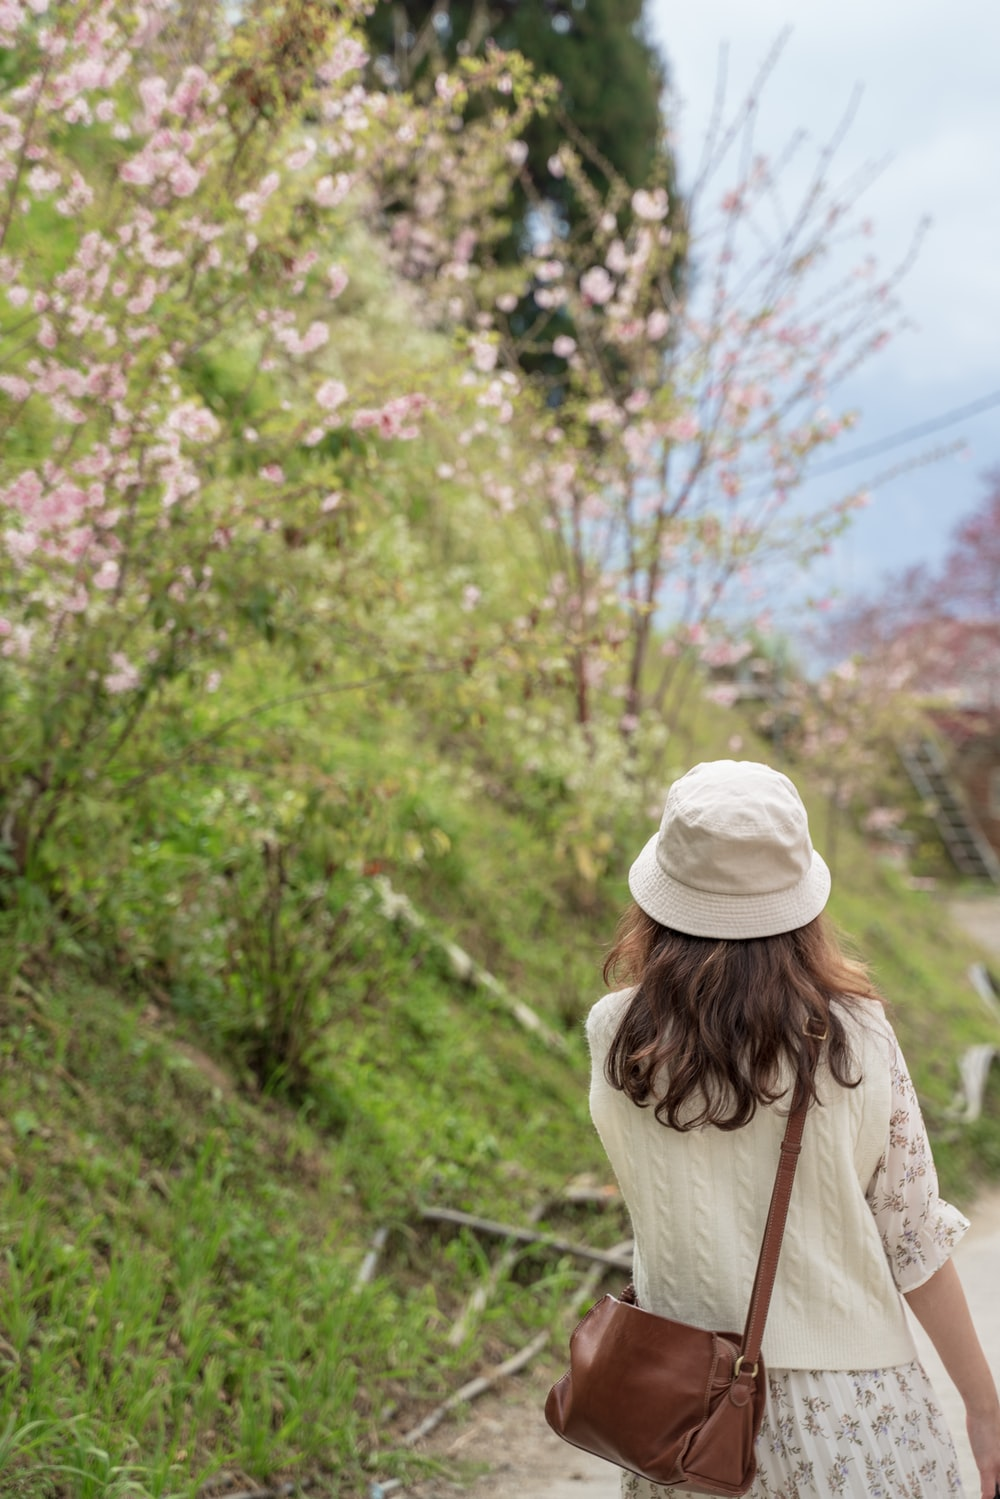 woman in white knit cap standing near green trees during daytime